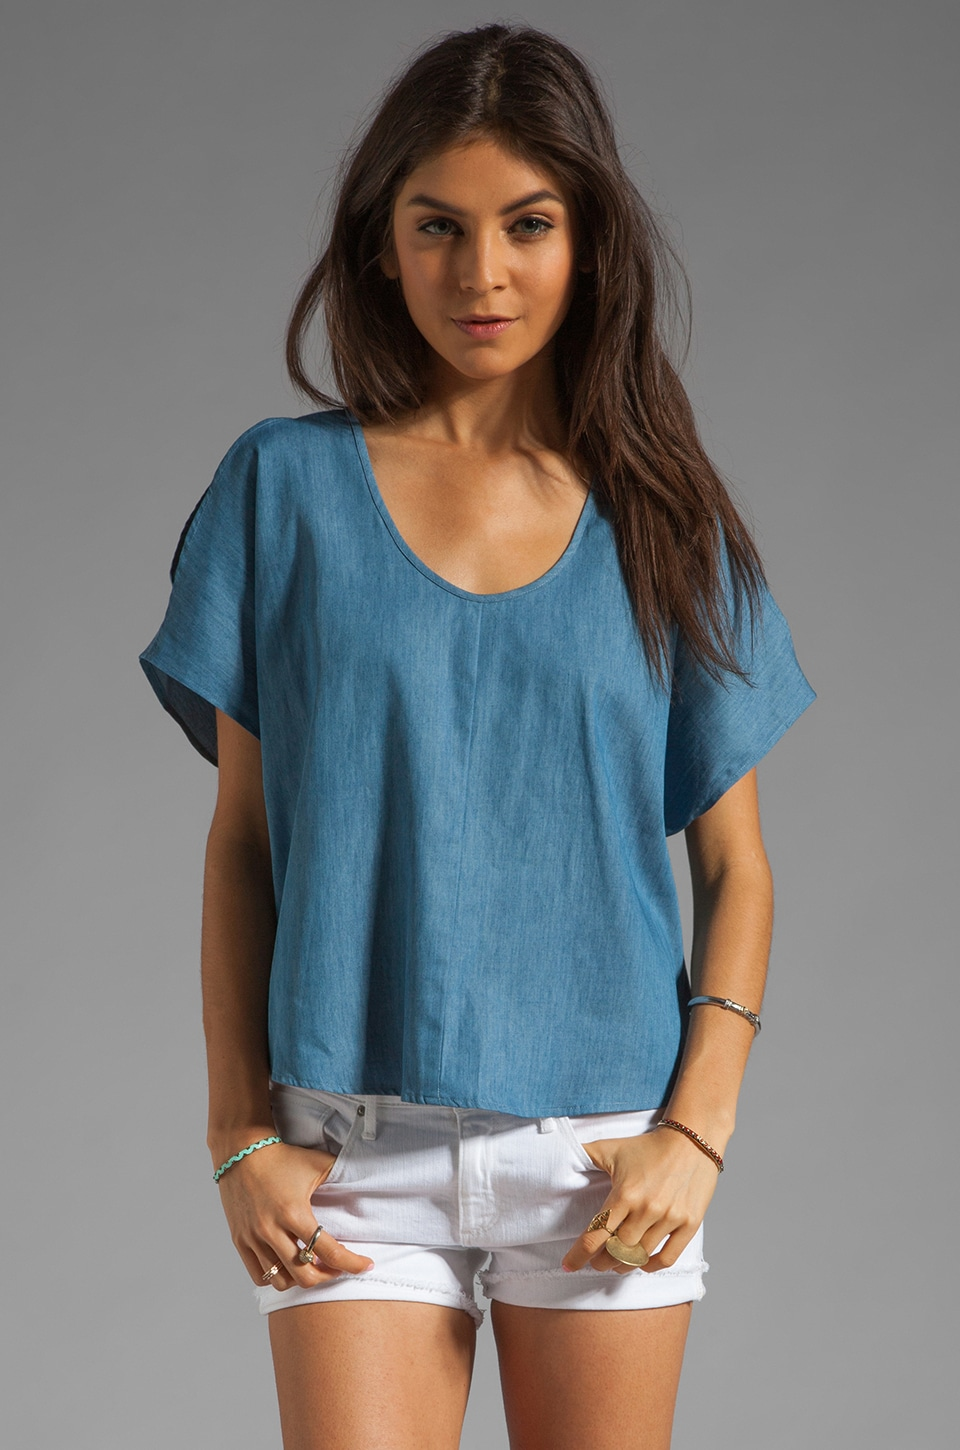 Riller & Fount Kara Split Shoulder Top with Back Slit in Midtown